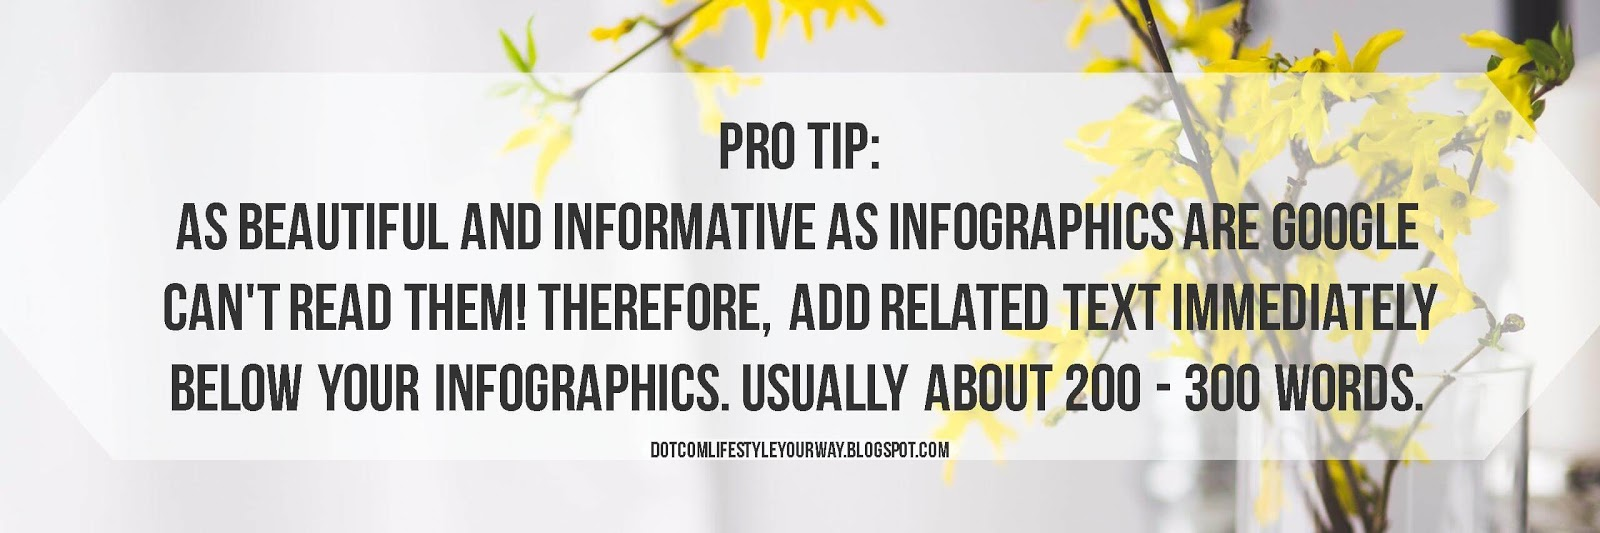 Pro Tip:As beautiful and informative as infographics are Google can't read them. Therefore, add related text immediately below your infographics. Usually about 200 - 300 words.